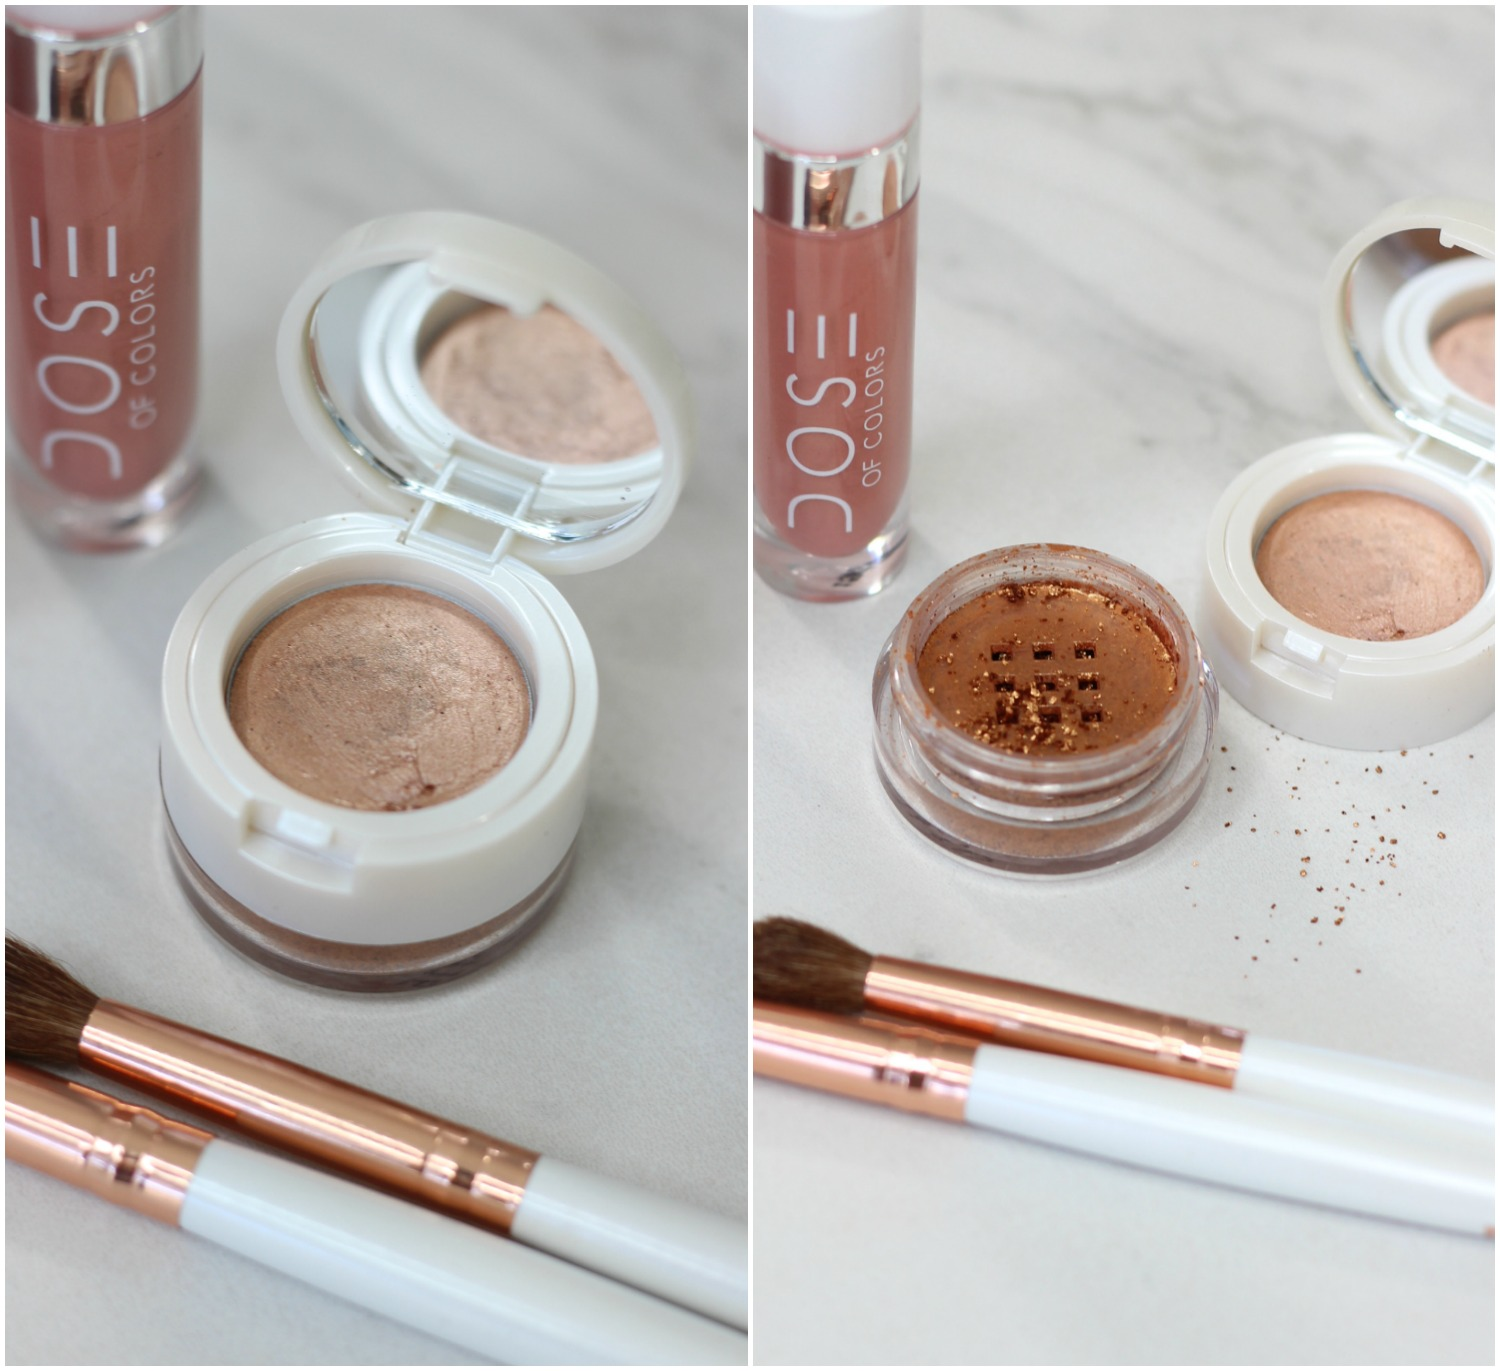 Dose of Colors Review Eyedeal Duo In Sunset